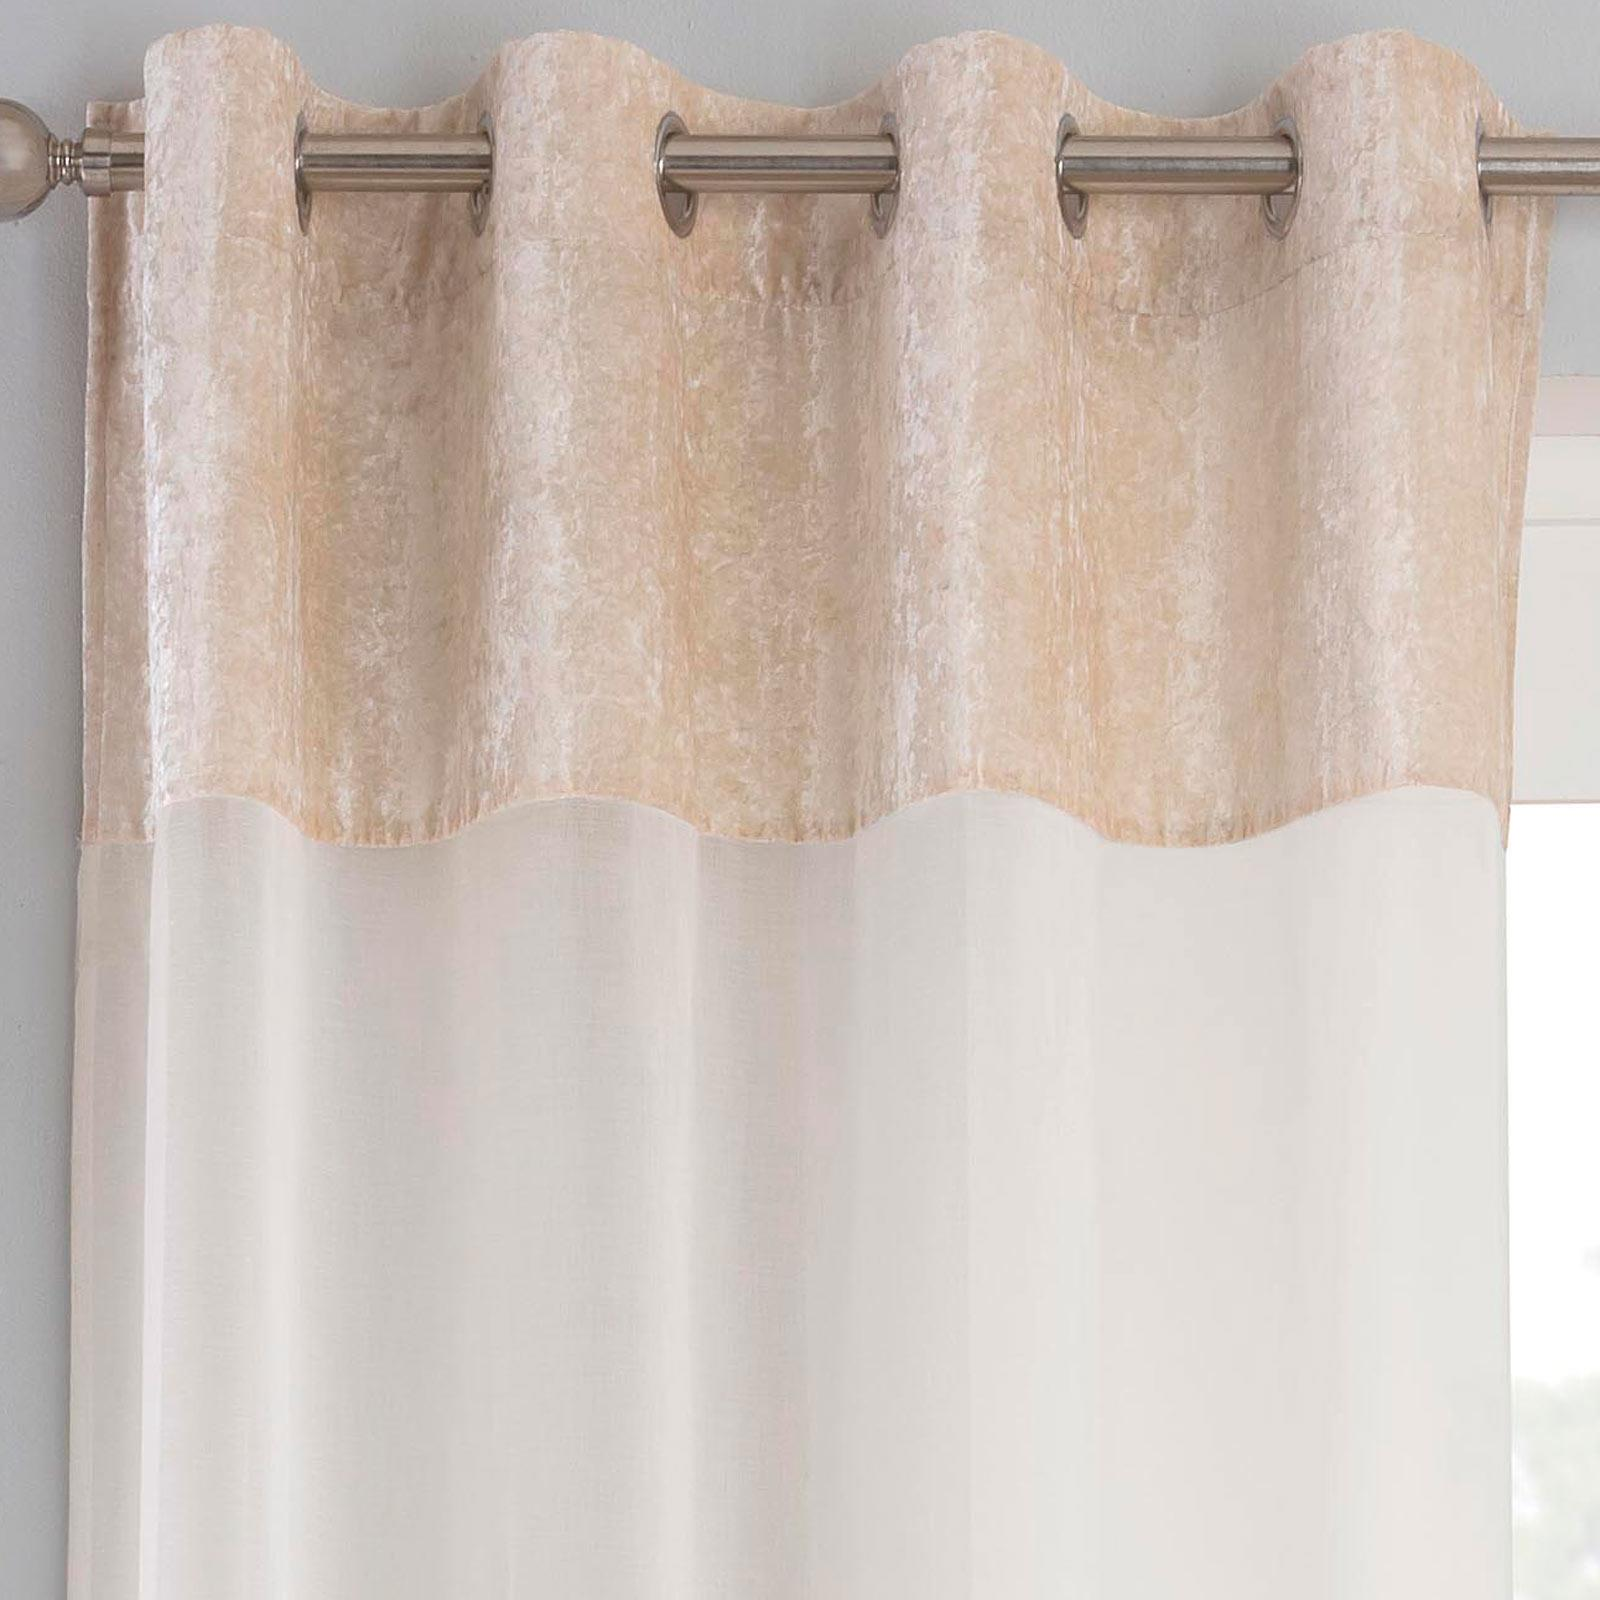 Velvet Voile Curtain Panels Liberty Crushed Velvet Ready